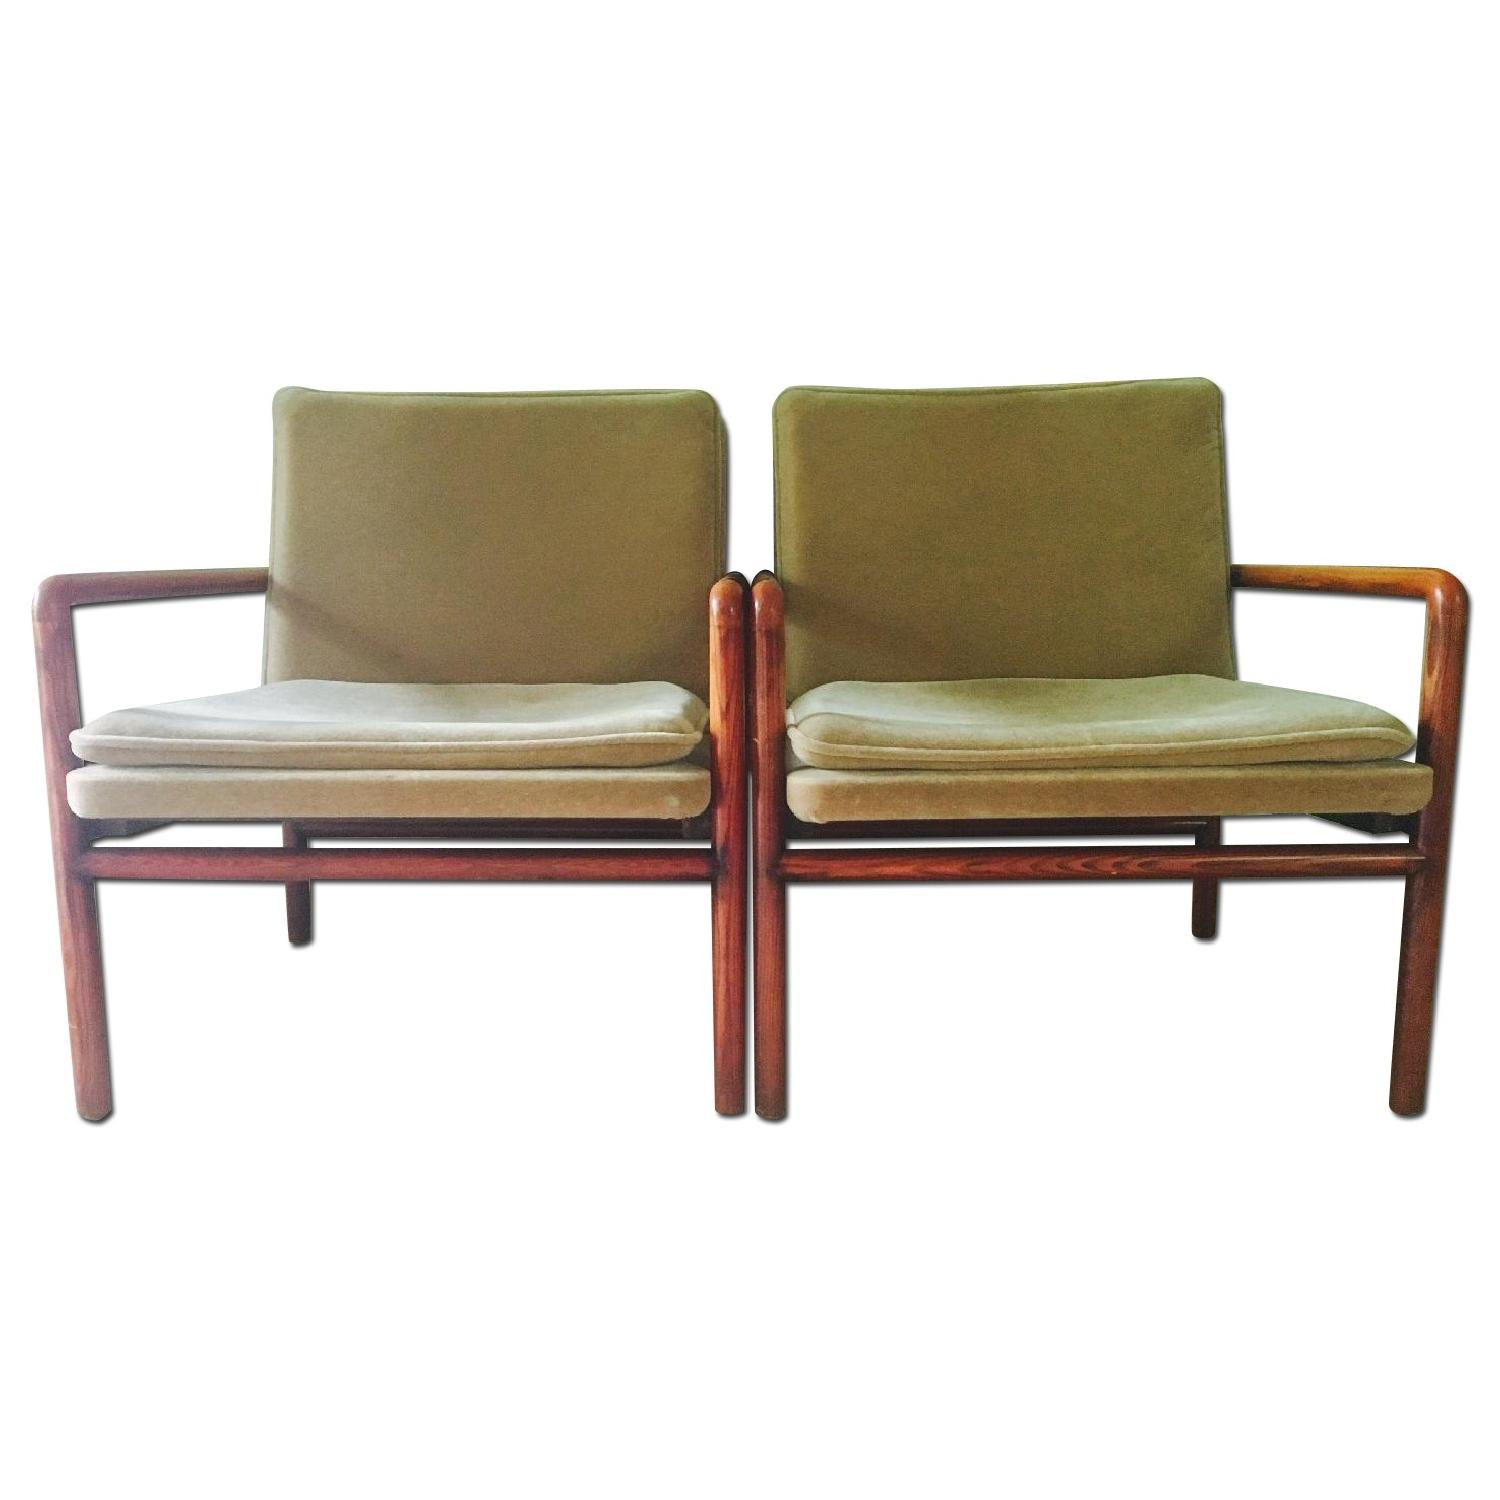 Mid Century Lounge Chairs - image-0